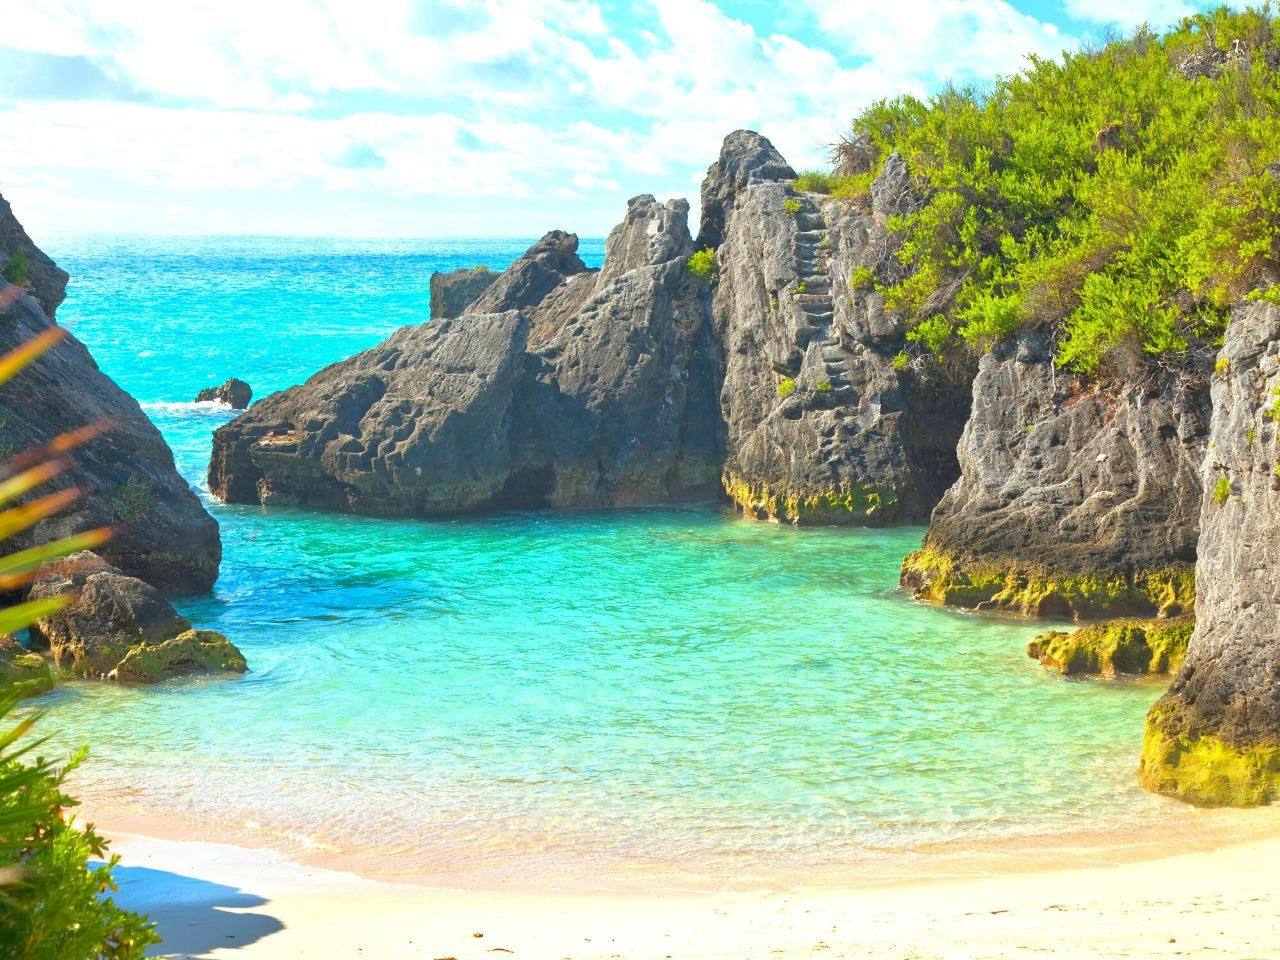 A secluded cove in Bermuda #travelclans #beaches #caribbean